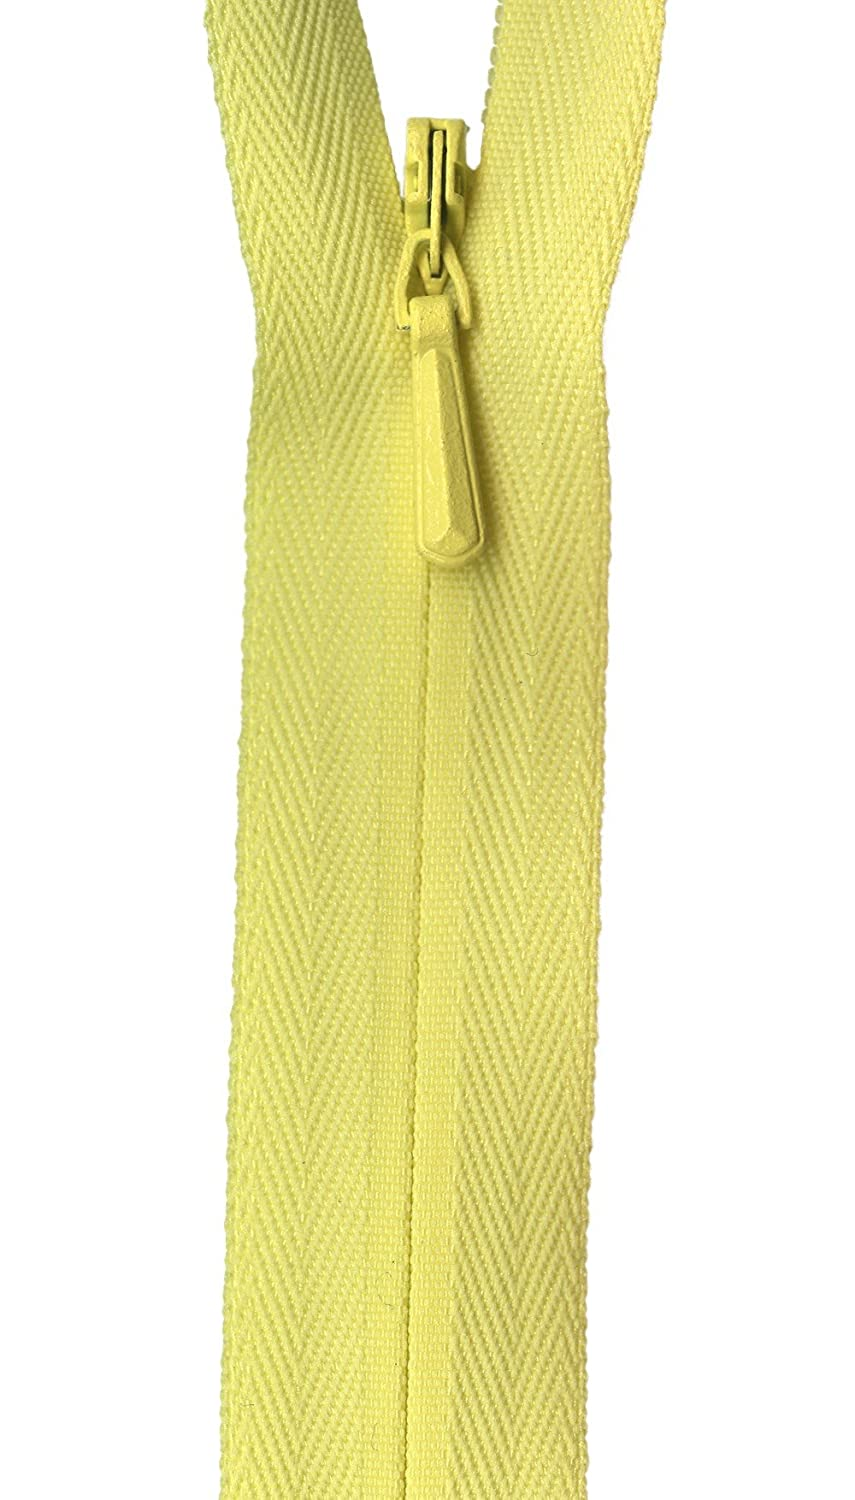 American /& Efird 309-501 Zippers Unique Invisible Zipper 9-Inch-White